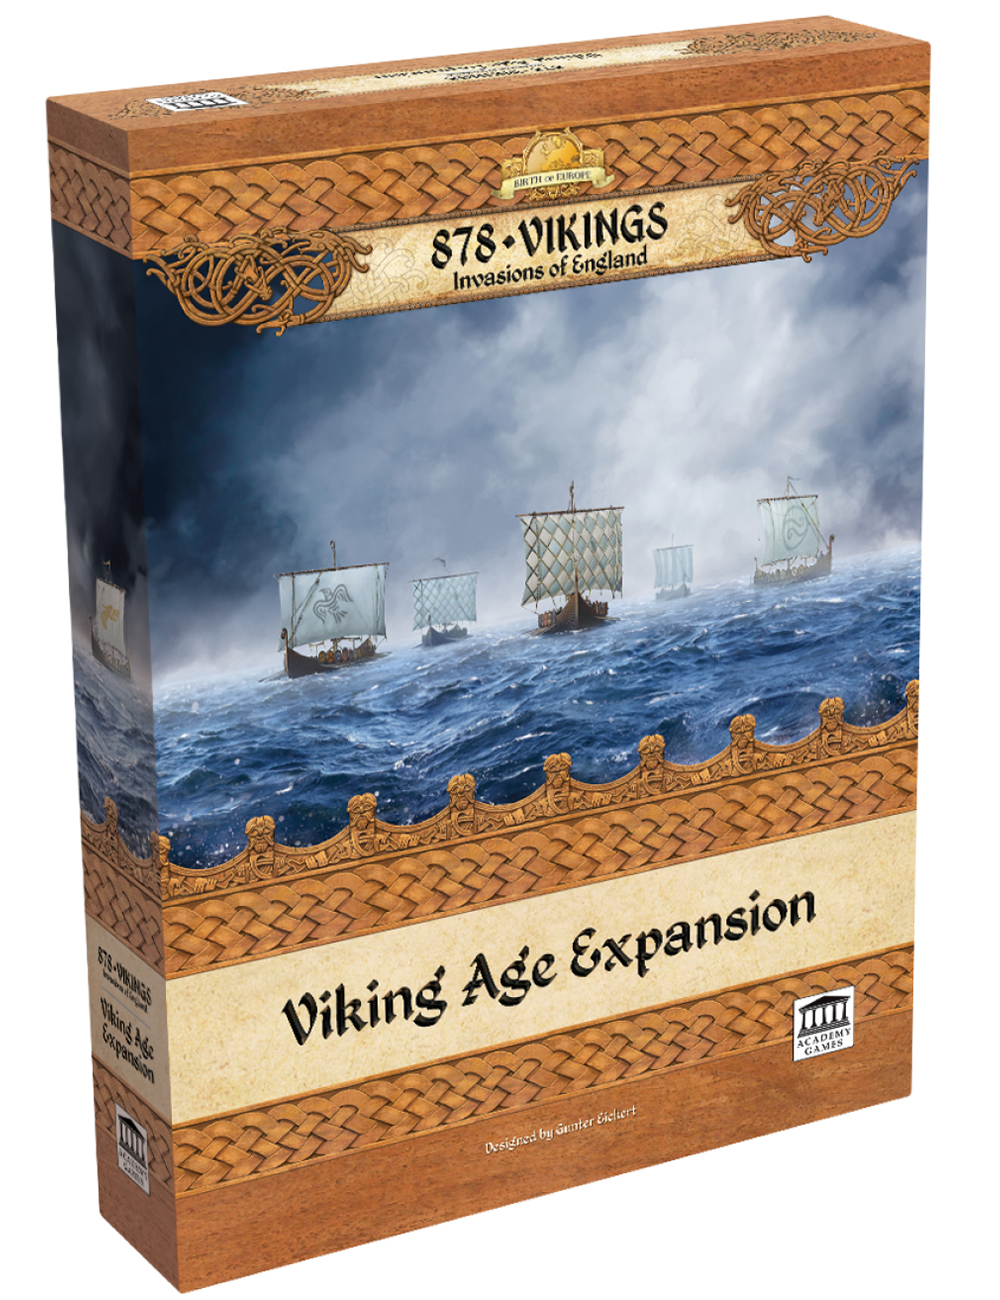 878 Vikings: Viking Age Expansion